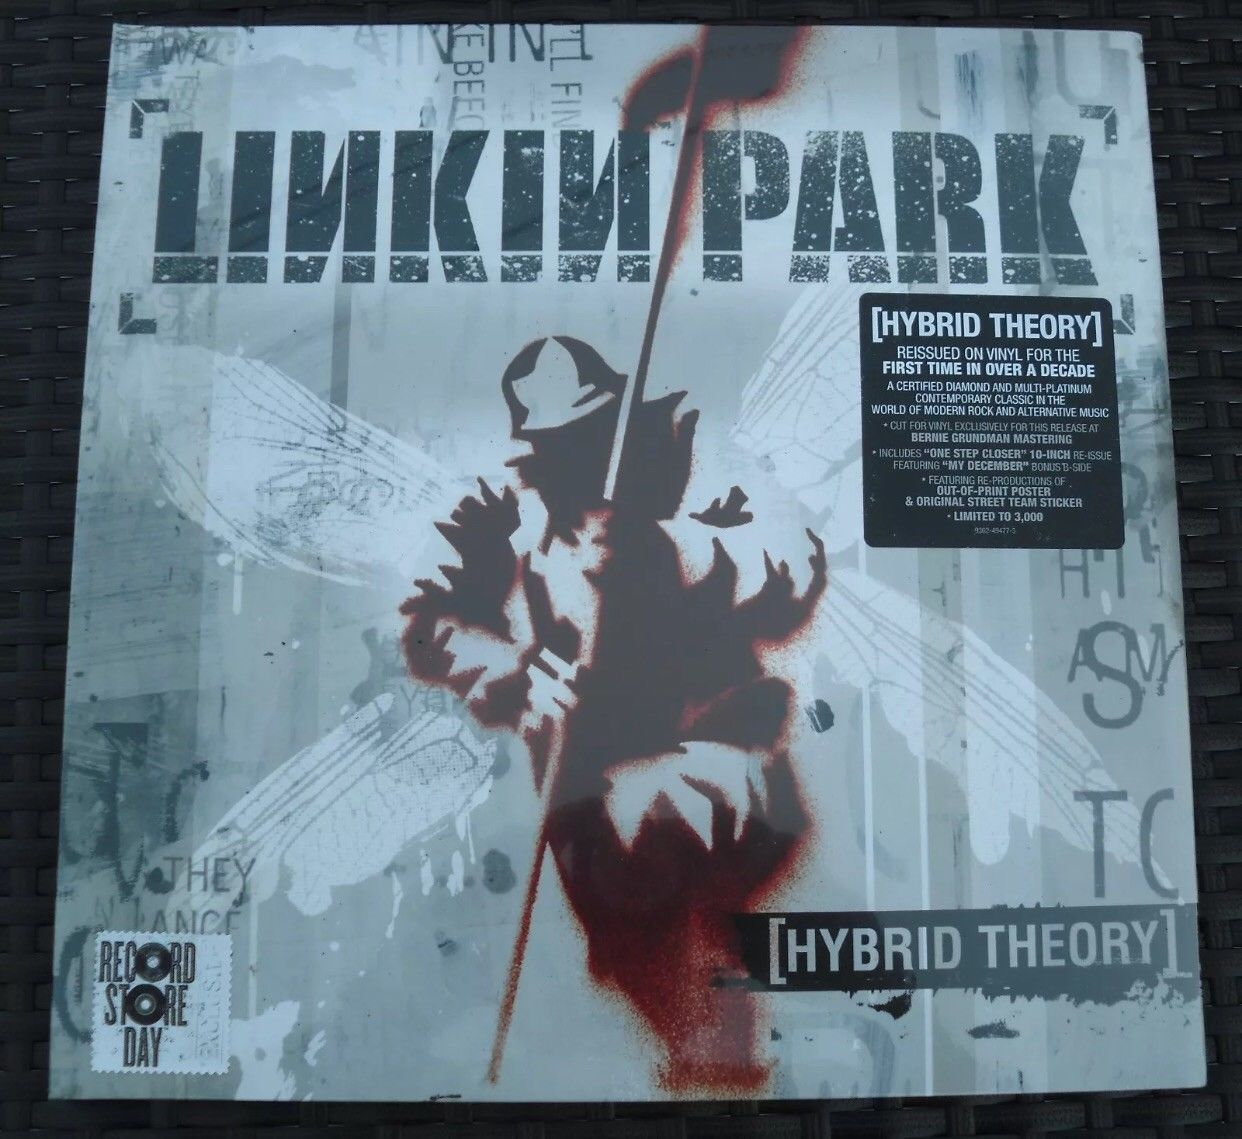 Linkin Park Hybrid Theory Lp Vinyl 10 Poster Rsd Record Store Day Ltd 3000 Ebay Linkin Park Hybrid Theory Linkin Park Record Store